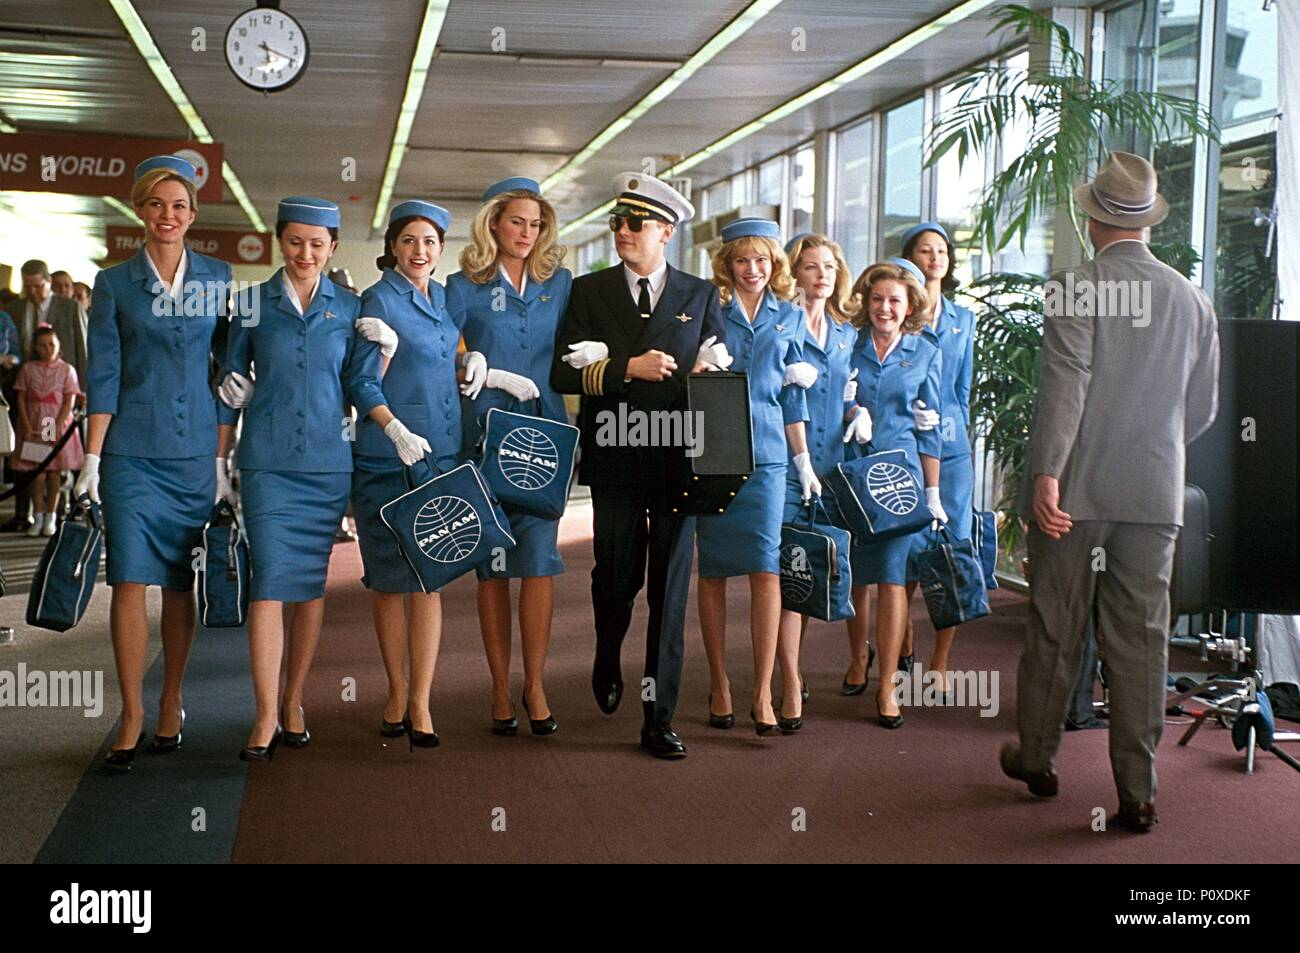 Original Film Title: CATCH ME IF YOU CAN.  English Title: CATCH ME IF YOU CAN.  Film Director: STEVEN SPIELBERG.  Year: 2002.  Stars: LEONARDO DICAPRIO. Credit: DREAMWORKS / COOPER, ANDREW / Album - Stock Image